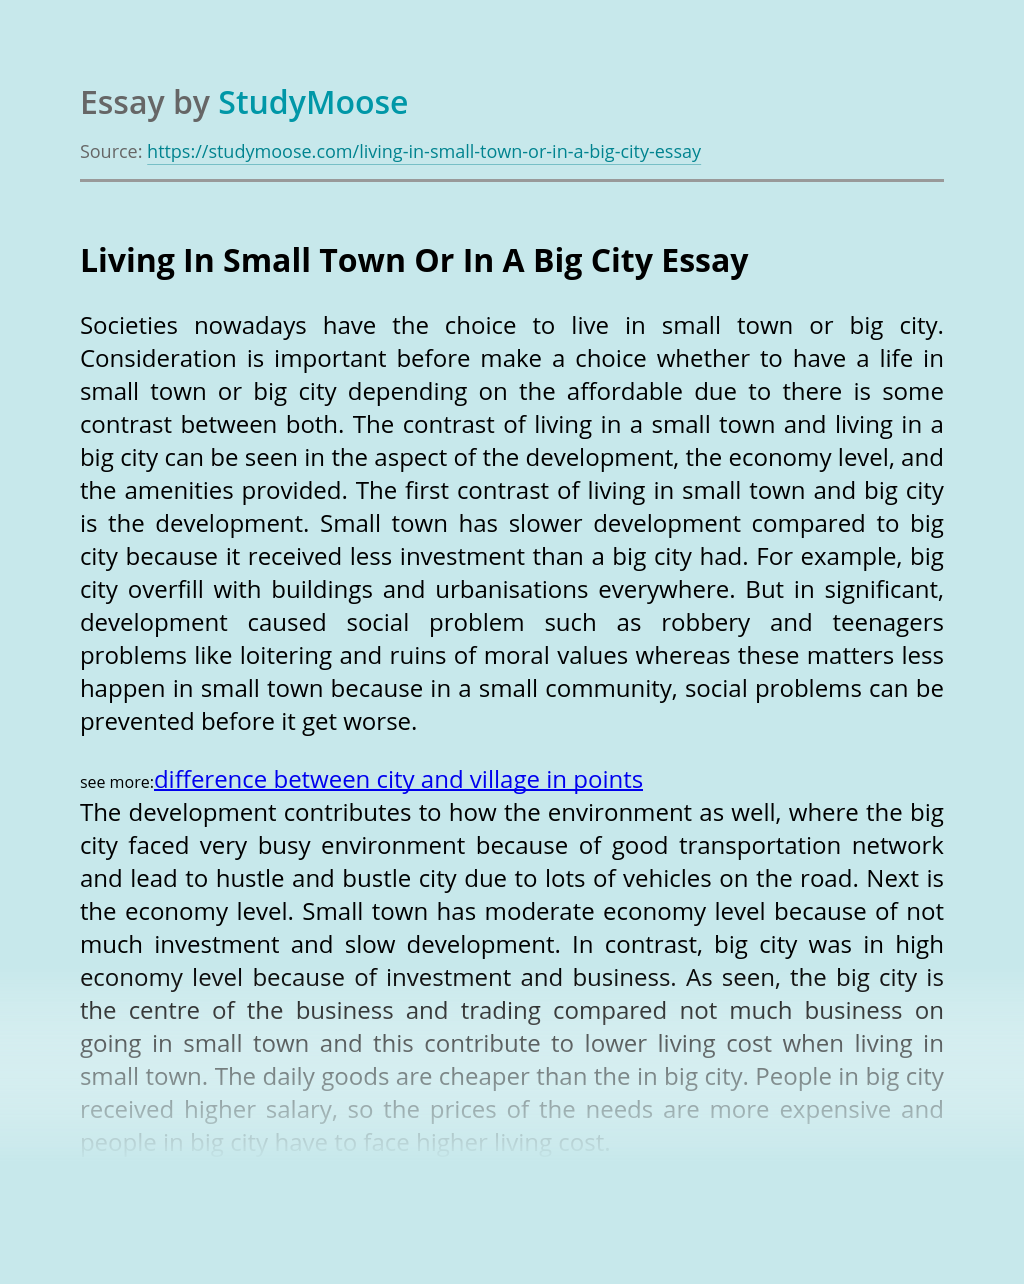 Living In Small Town Or In A Big City